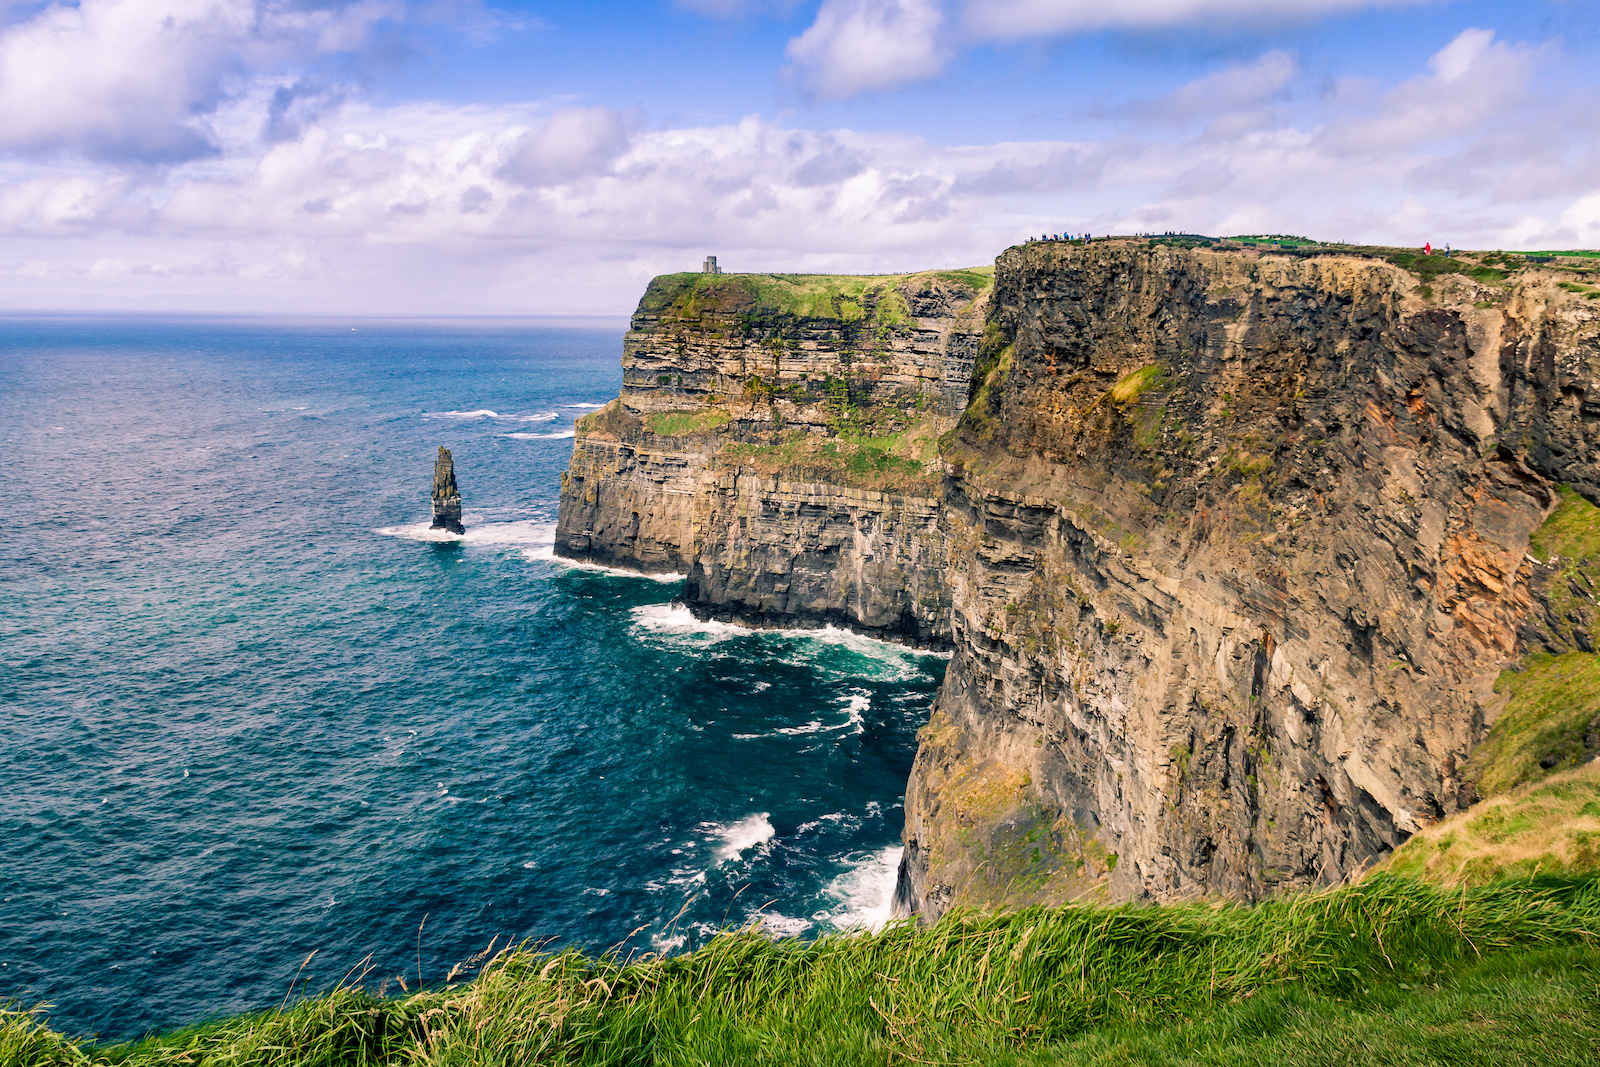 Clifs of Moher in Ireland